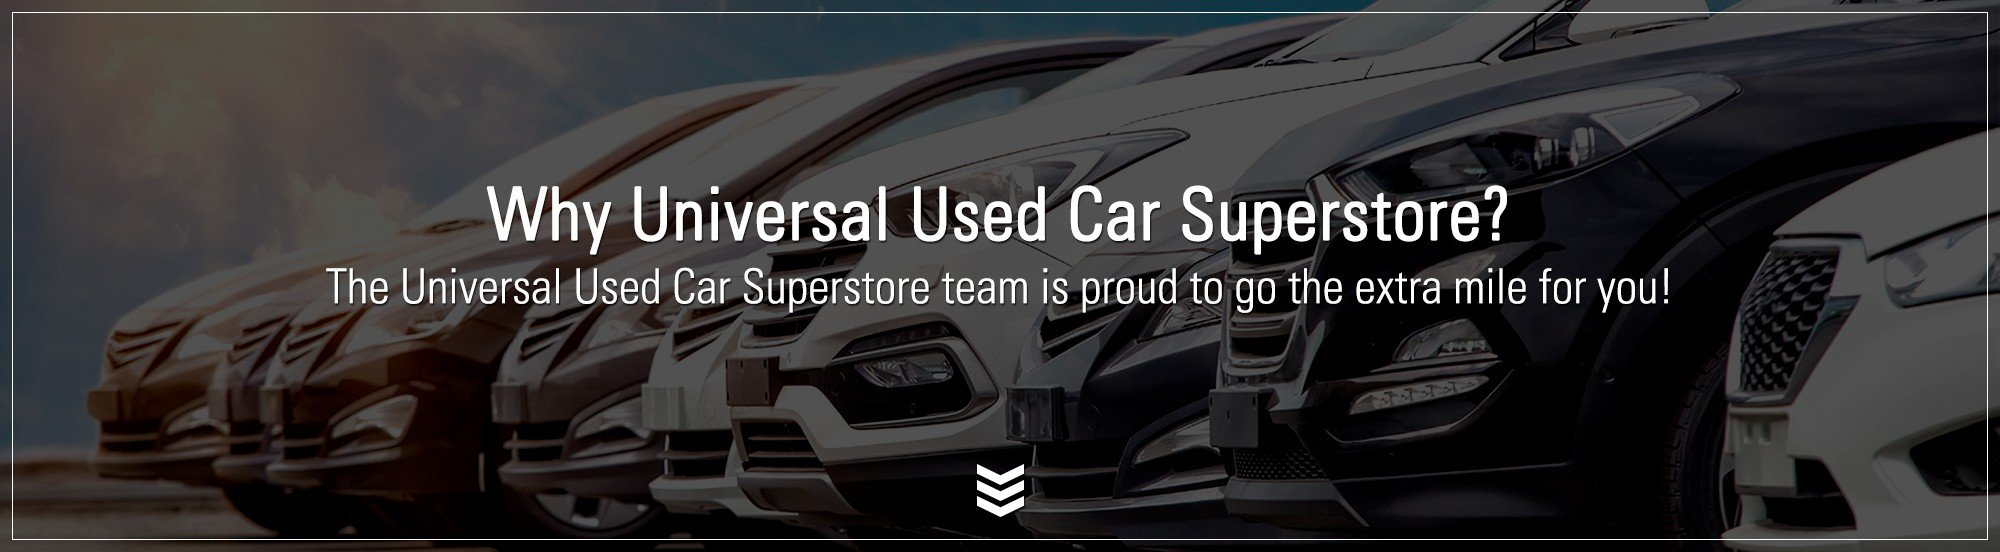 why buy from universal used car superstore